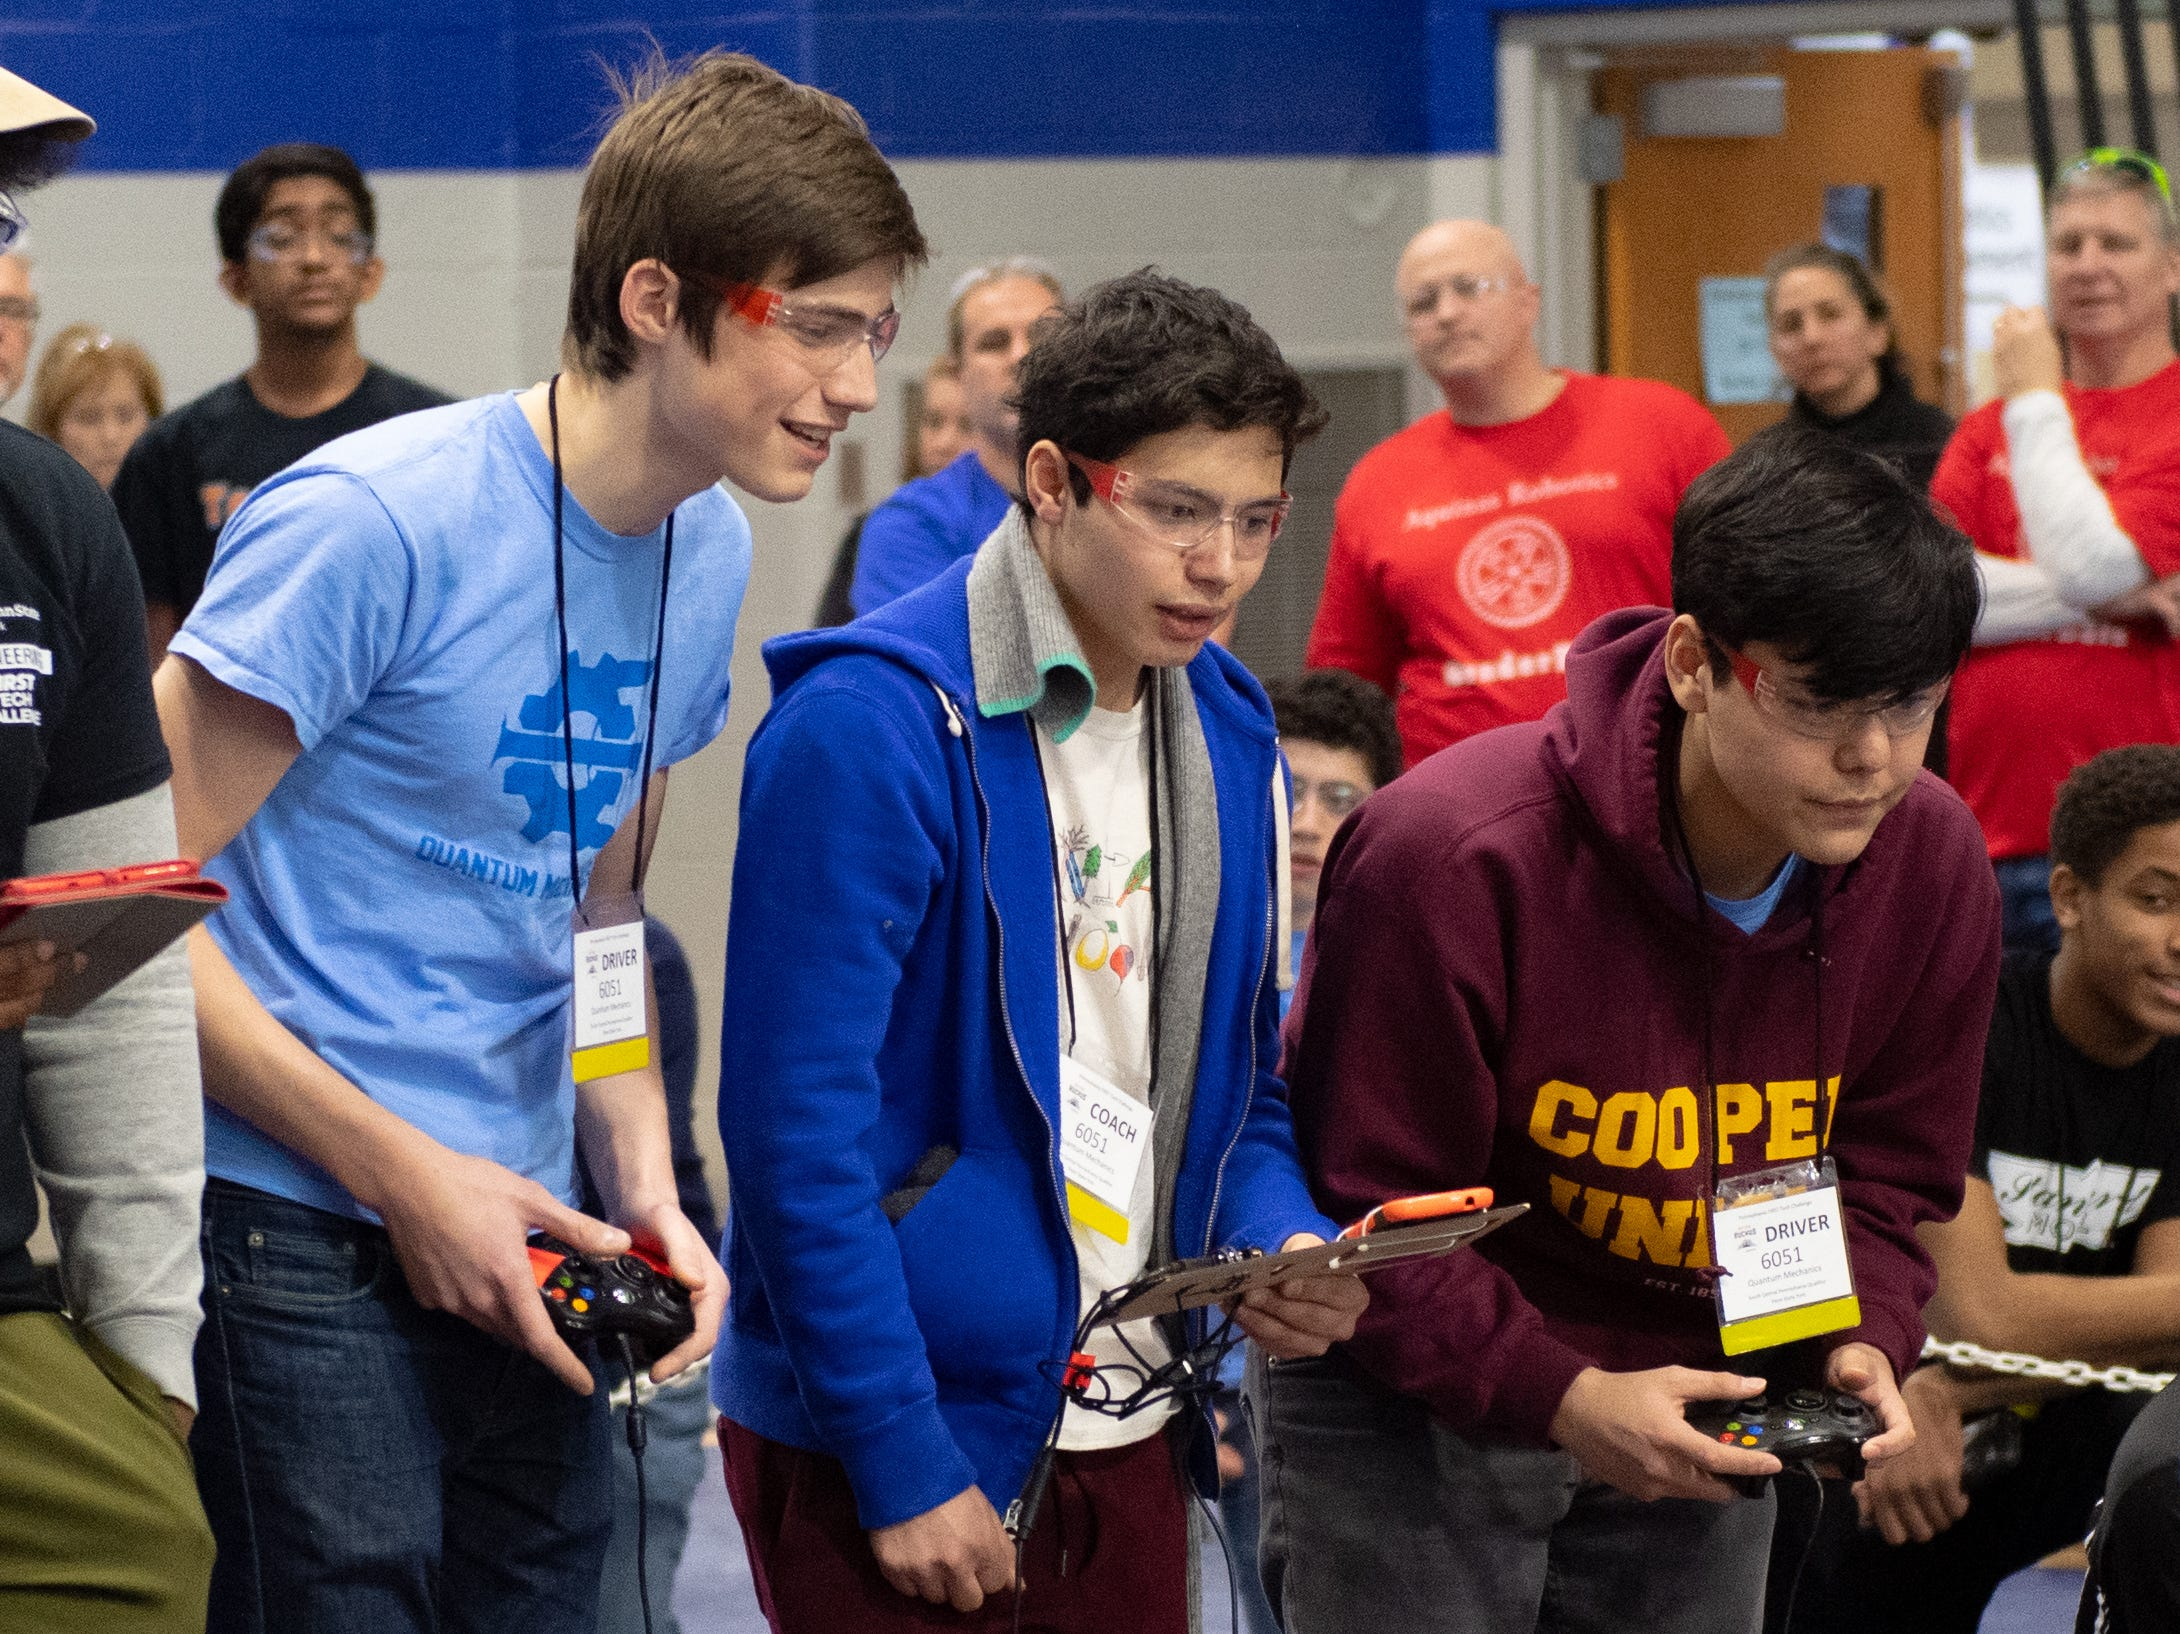 Two drivers and a coach make up each three person team. They must work together closely to be successful during the First Tech Challenge robotics competition, February 2, 2019.